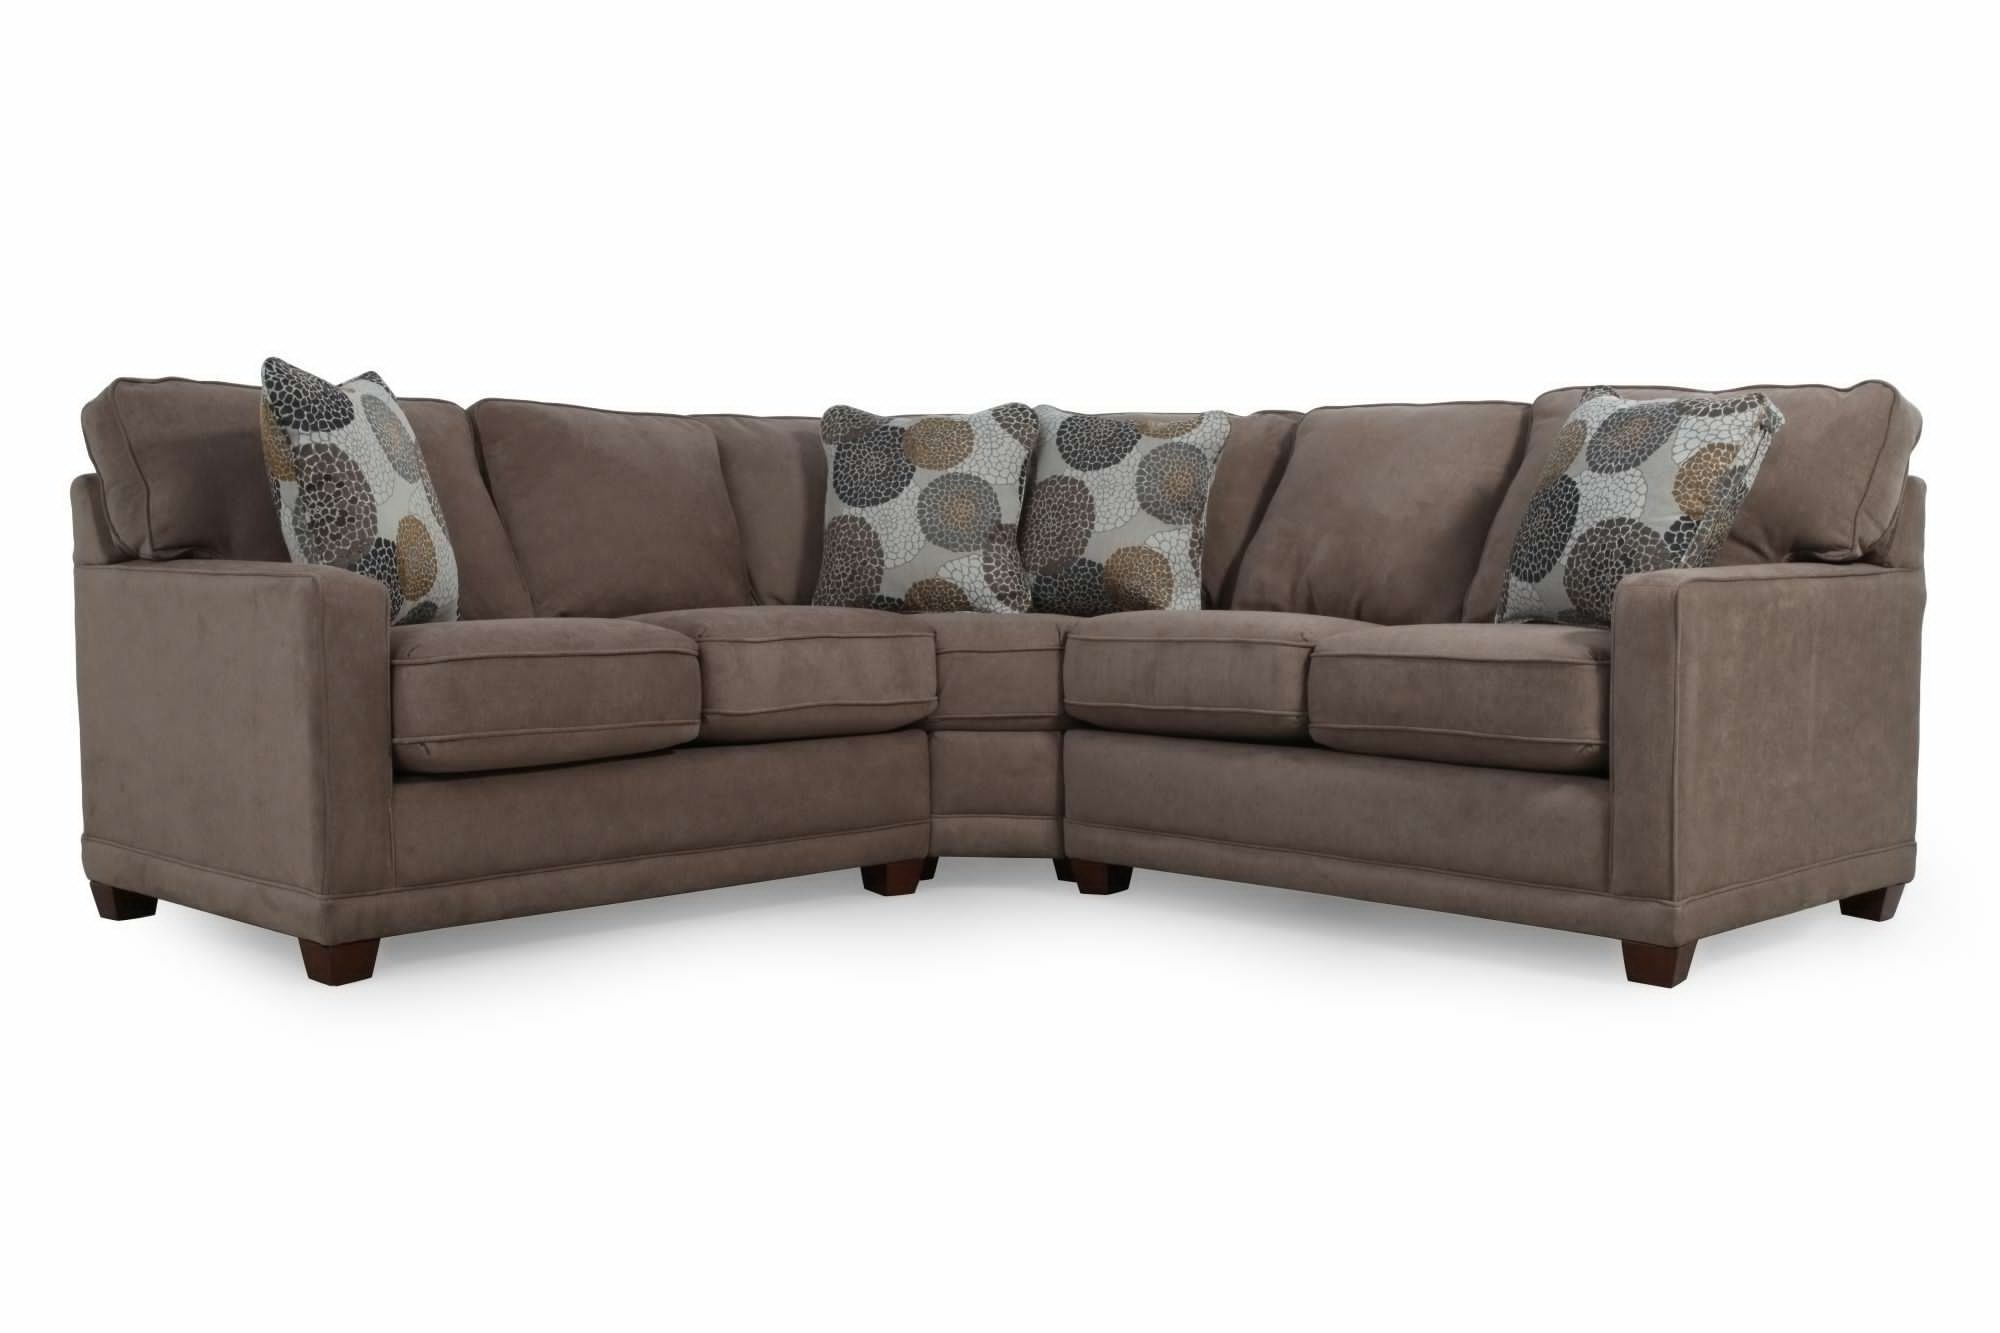 Lazyboy Sectional Sofas Within Best And Newest Sectional Sofa Design: Lazy Boy Sectional Sofa Sale James (View 6 of 15)